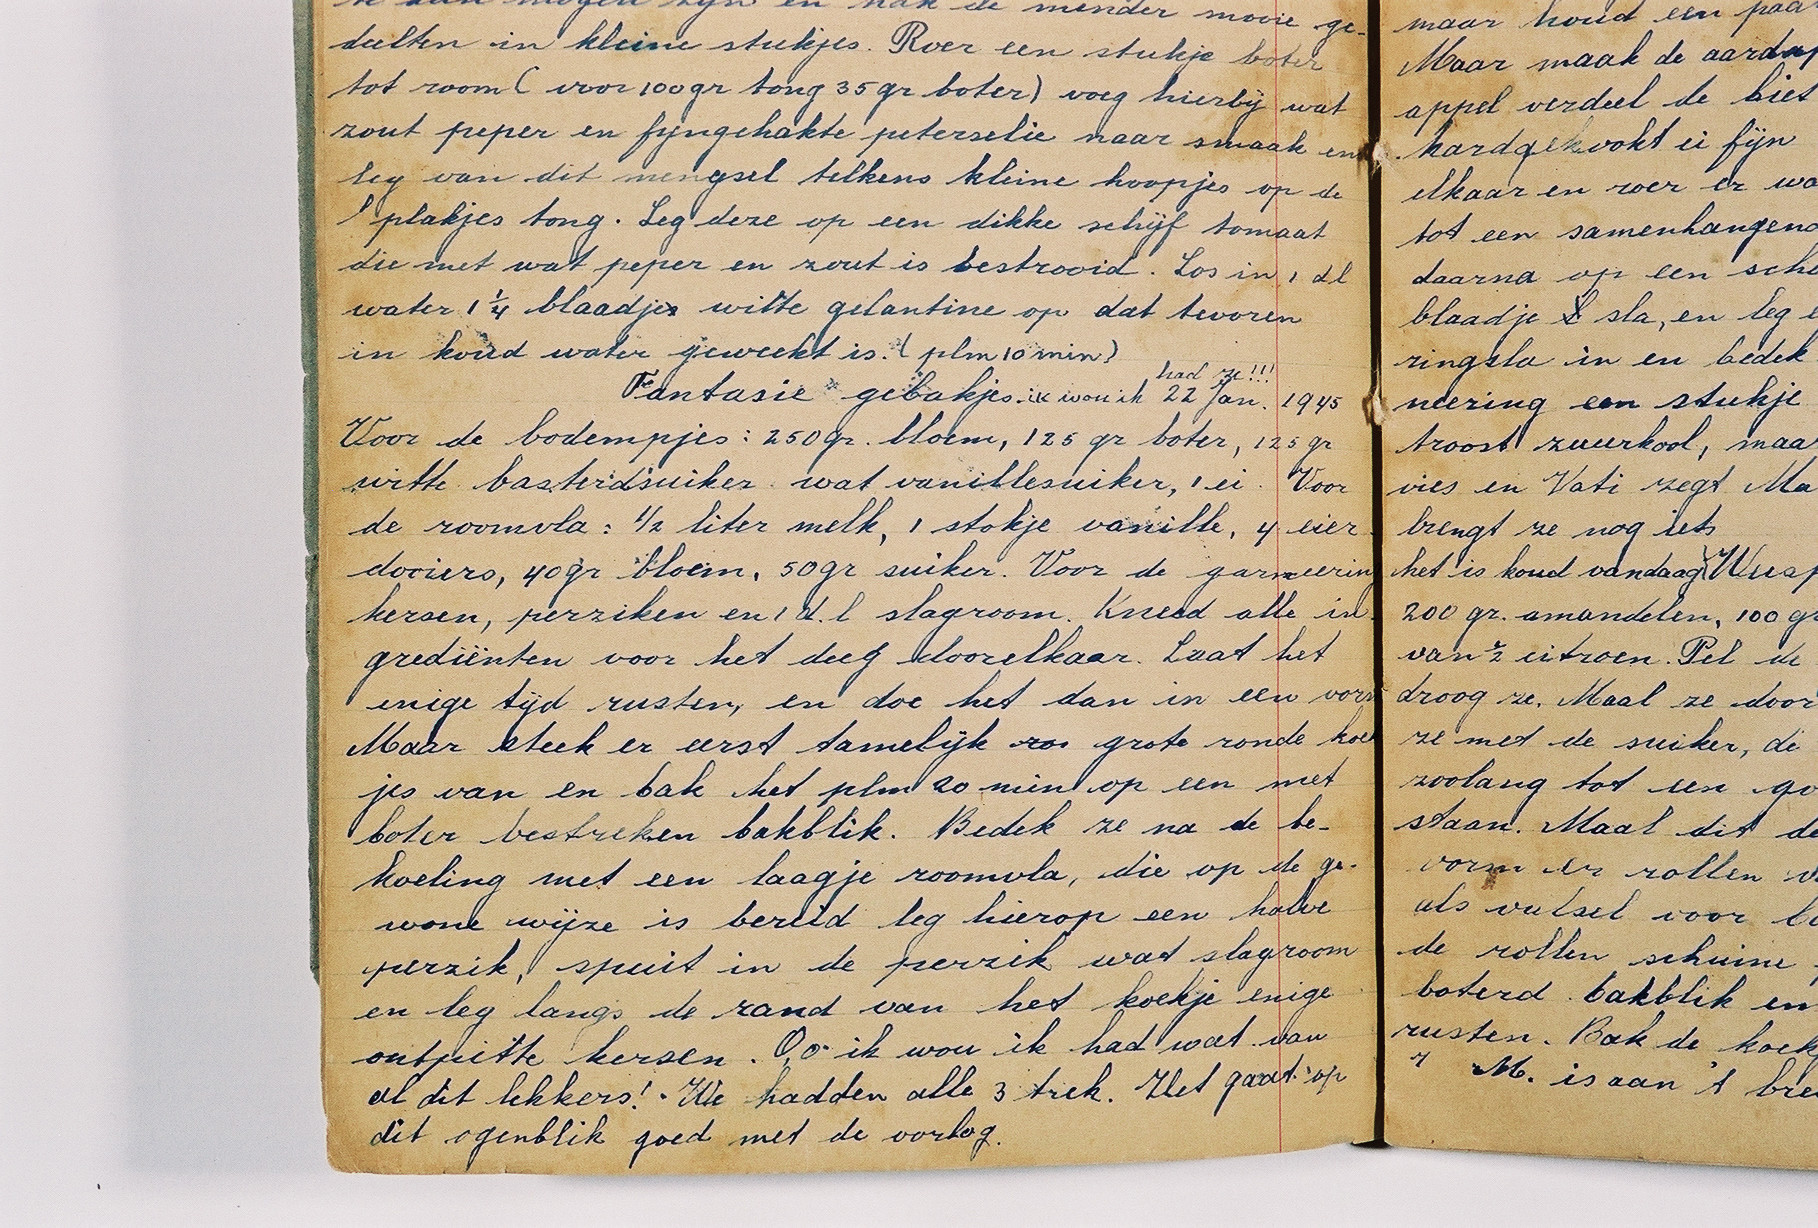 A detail of a page from a diary written by Susie Grunbaum Schwarz while in hiding.  She disguised the diary in the form of a cookbook written in several languages.